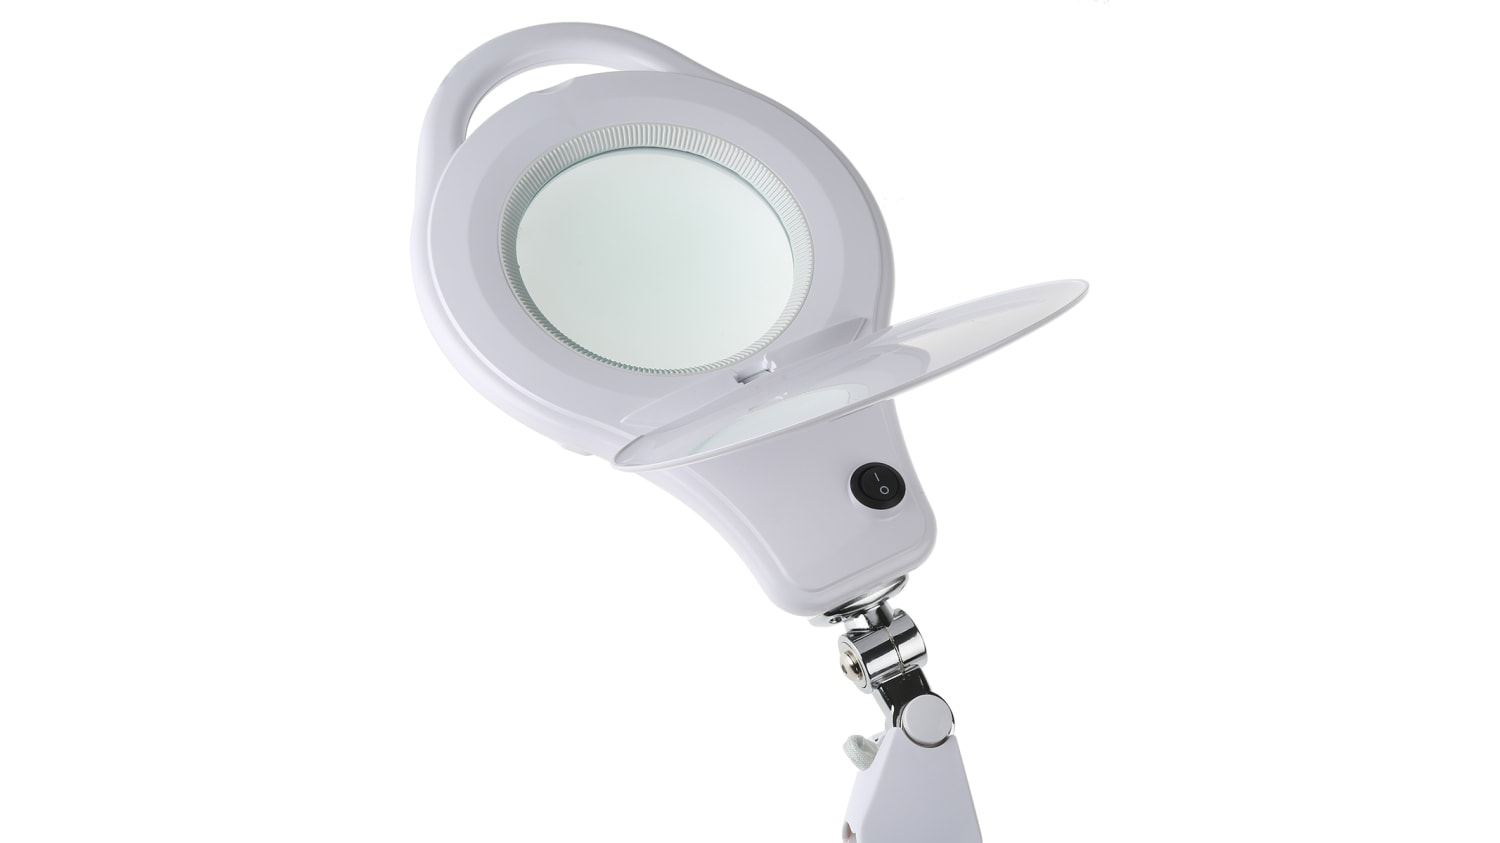 Rs Pro Led Magnifying Lamp With Table Clamp Mount 3dioptre 125mm Lens Dia 125mm Lens Rs Components